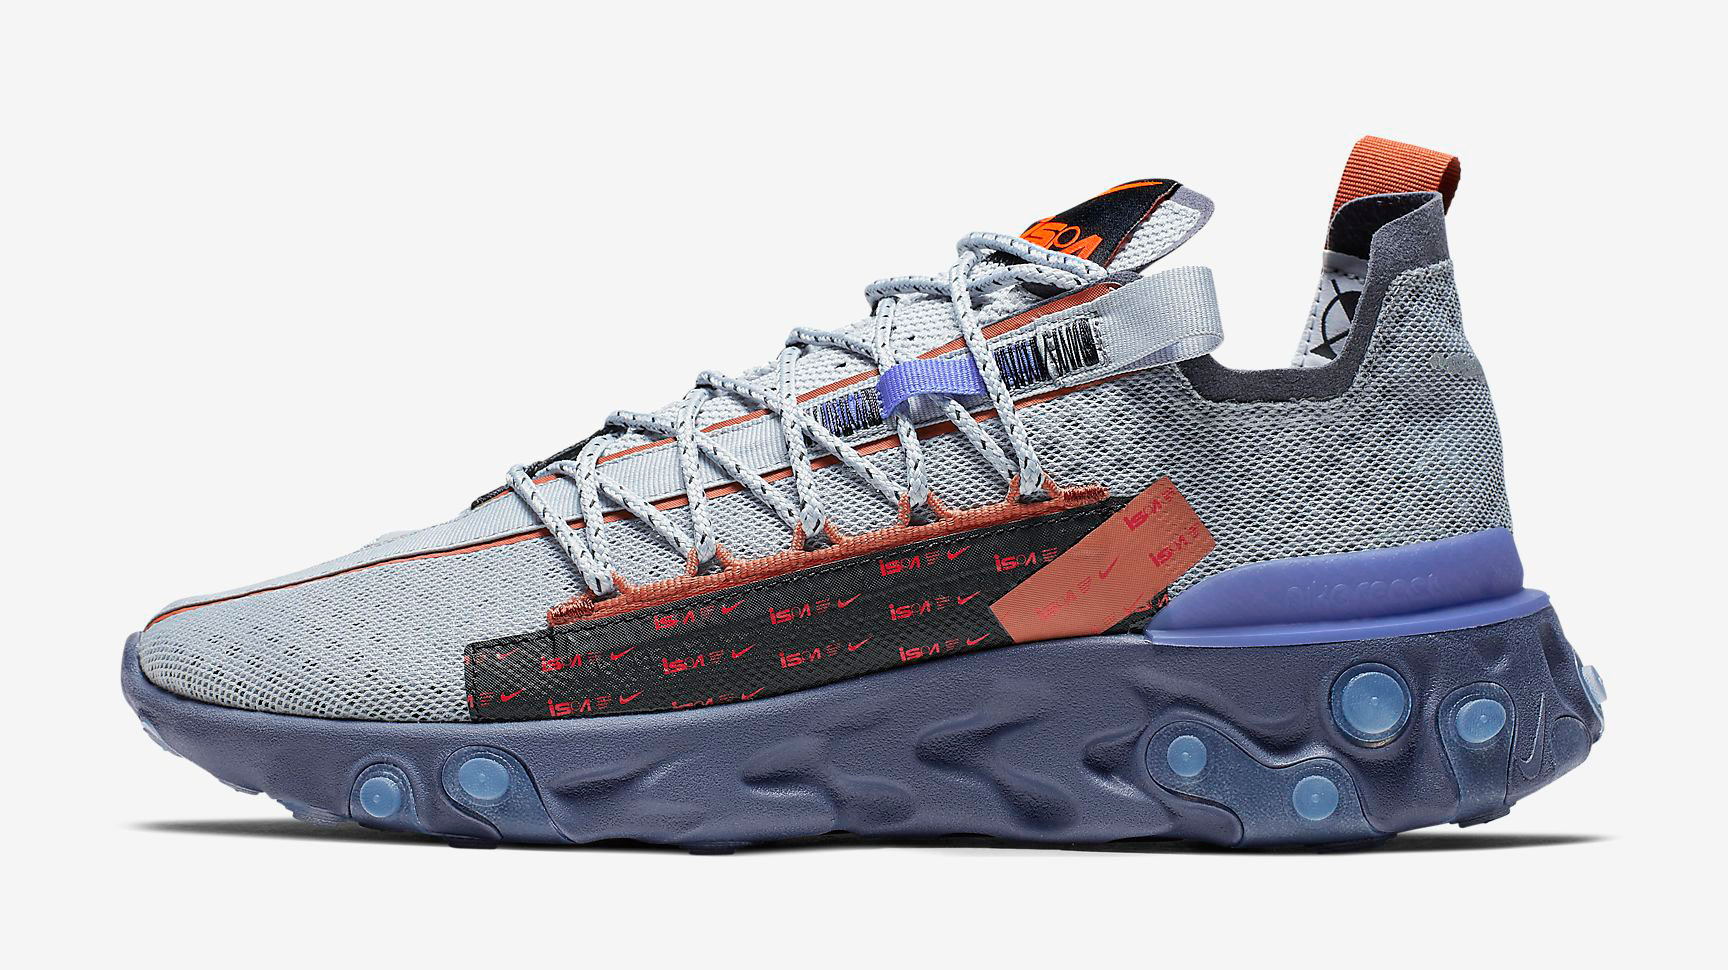 nike-ispa-react-wolf-grey-dusty-peach-release-date